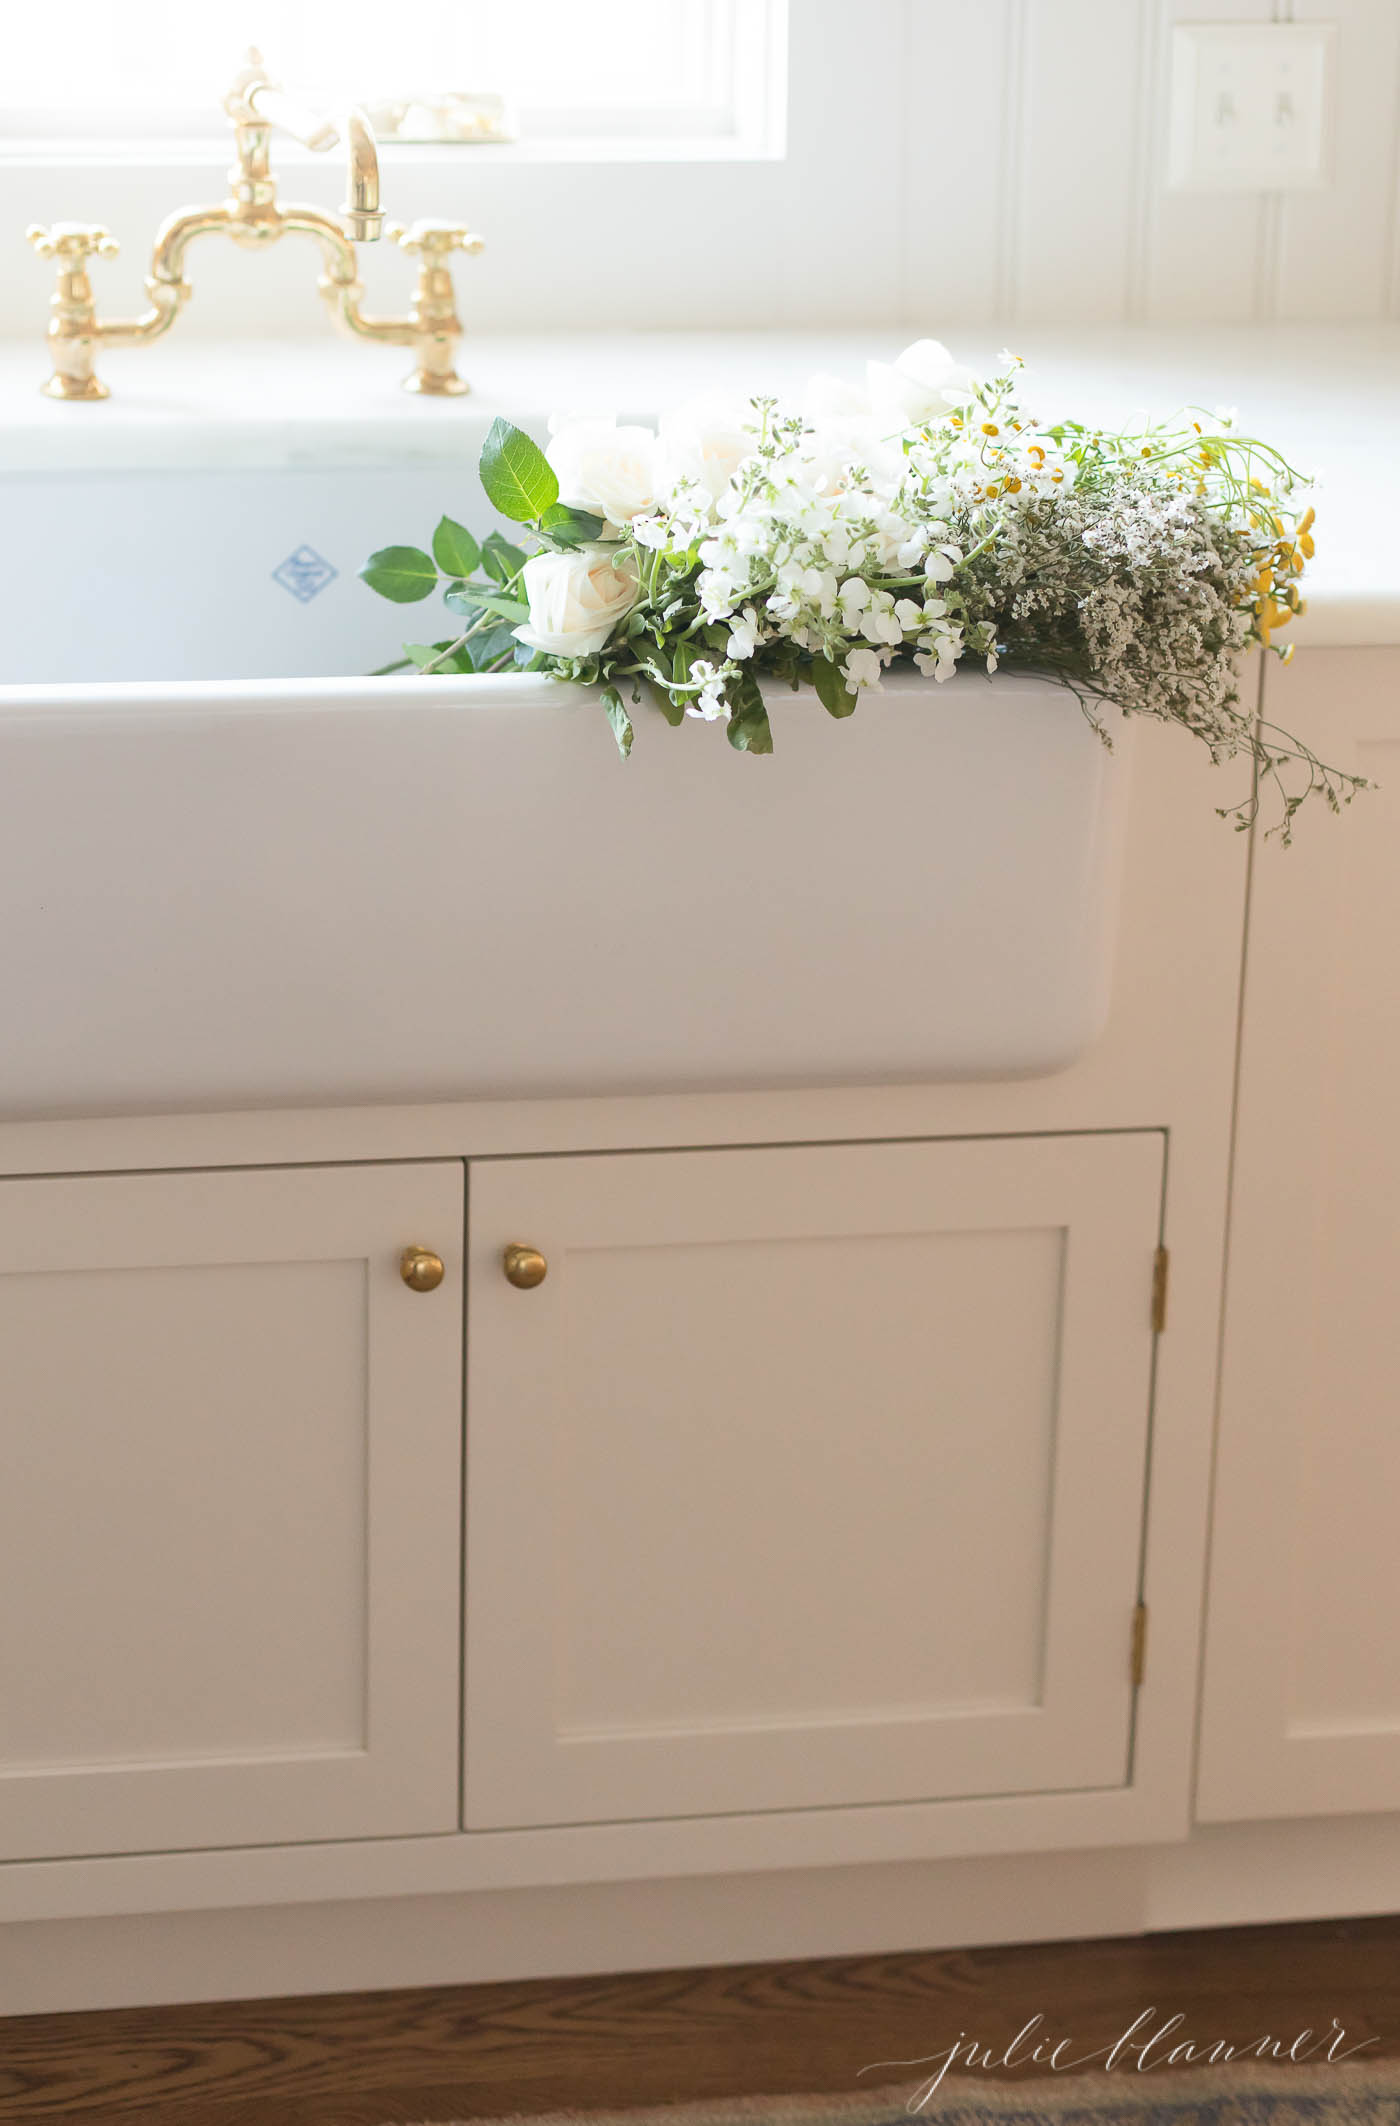 A white farmhouse kitchen sink with a brass faucet and flowers inside.